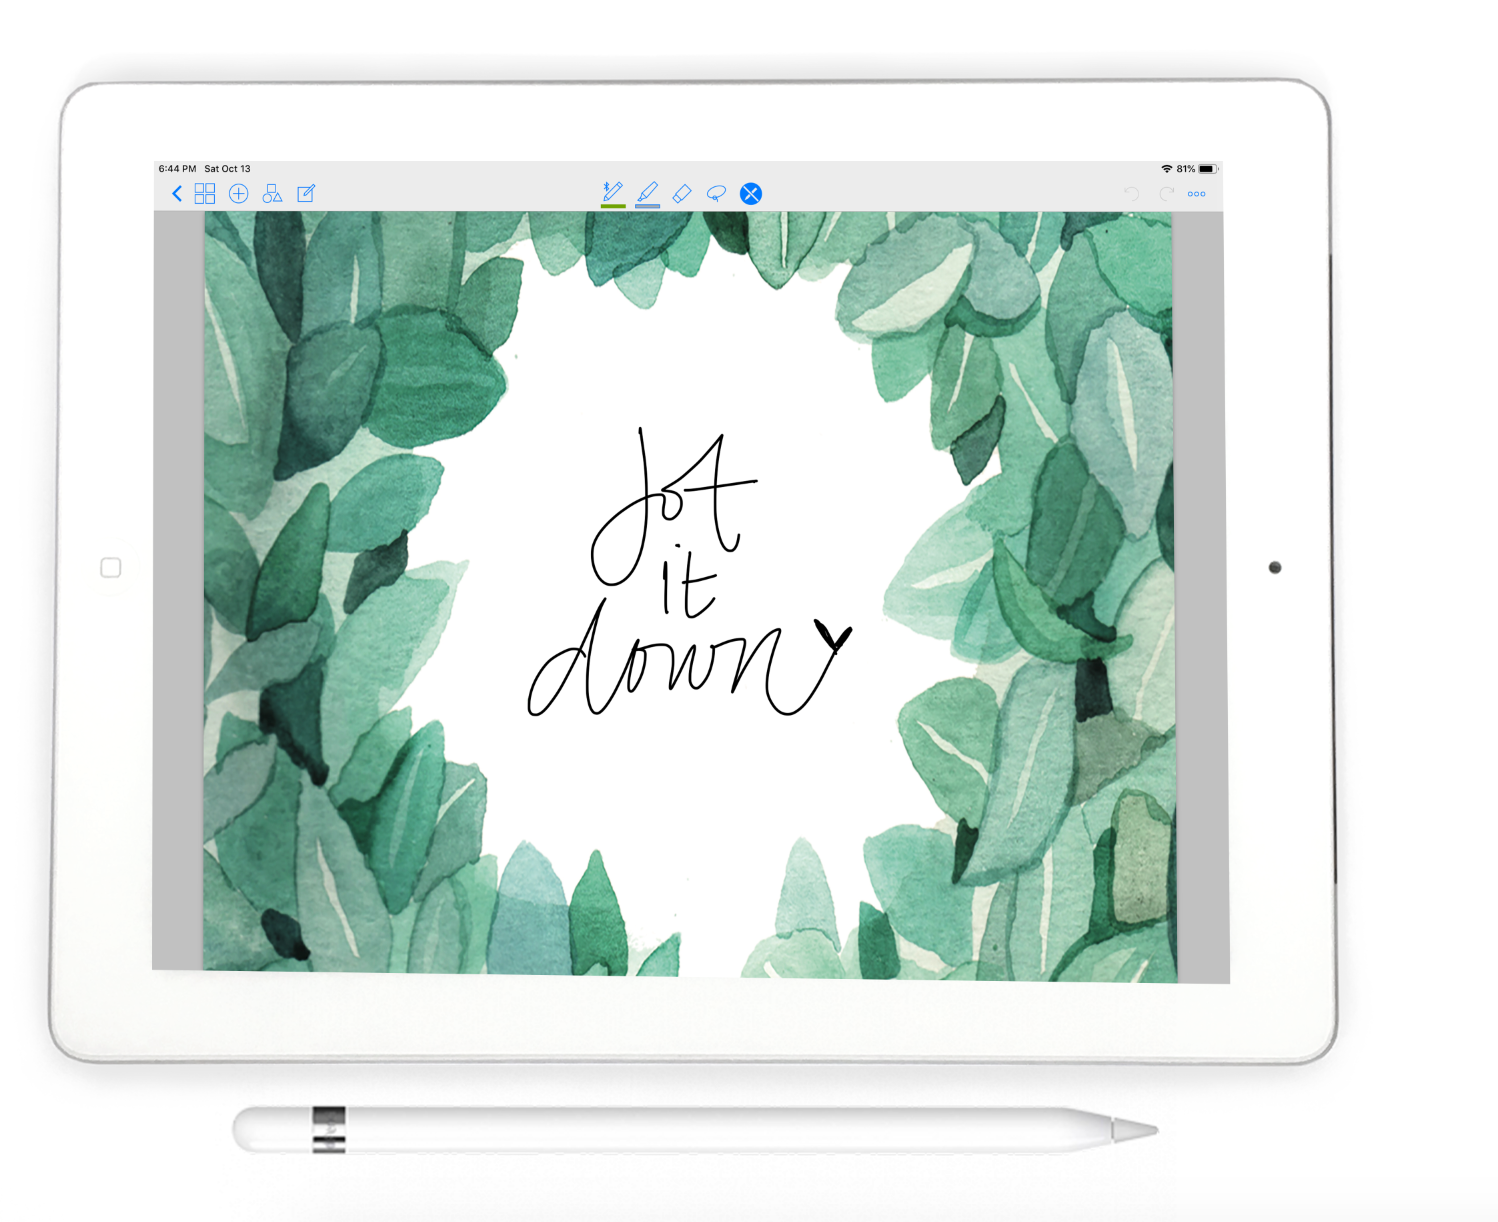 Stylish Planner and Stylish Gifts - Eucalyptus Digital Notebook - Digital Planner Collection